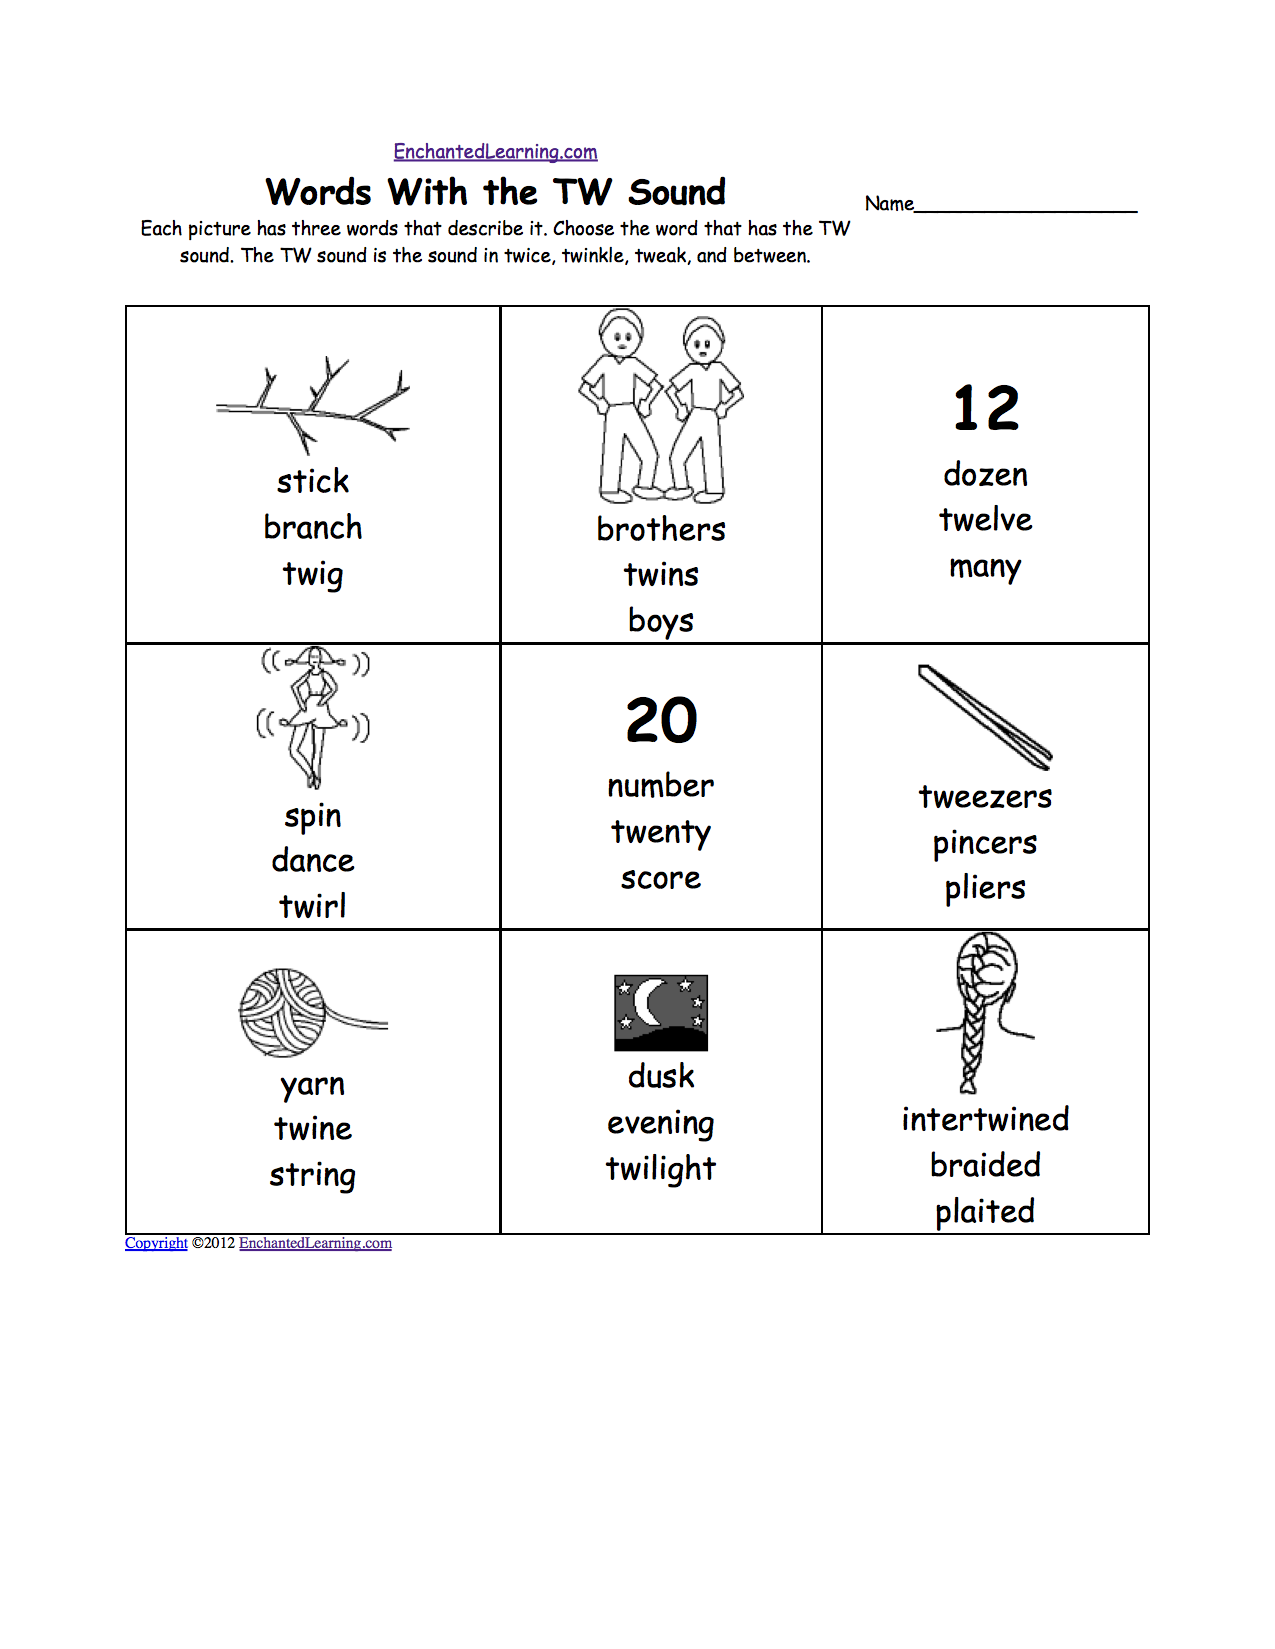 Images Following Directions Worksheet Kindergarten – Following Directions Worksheet Kindergarten